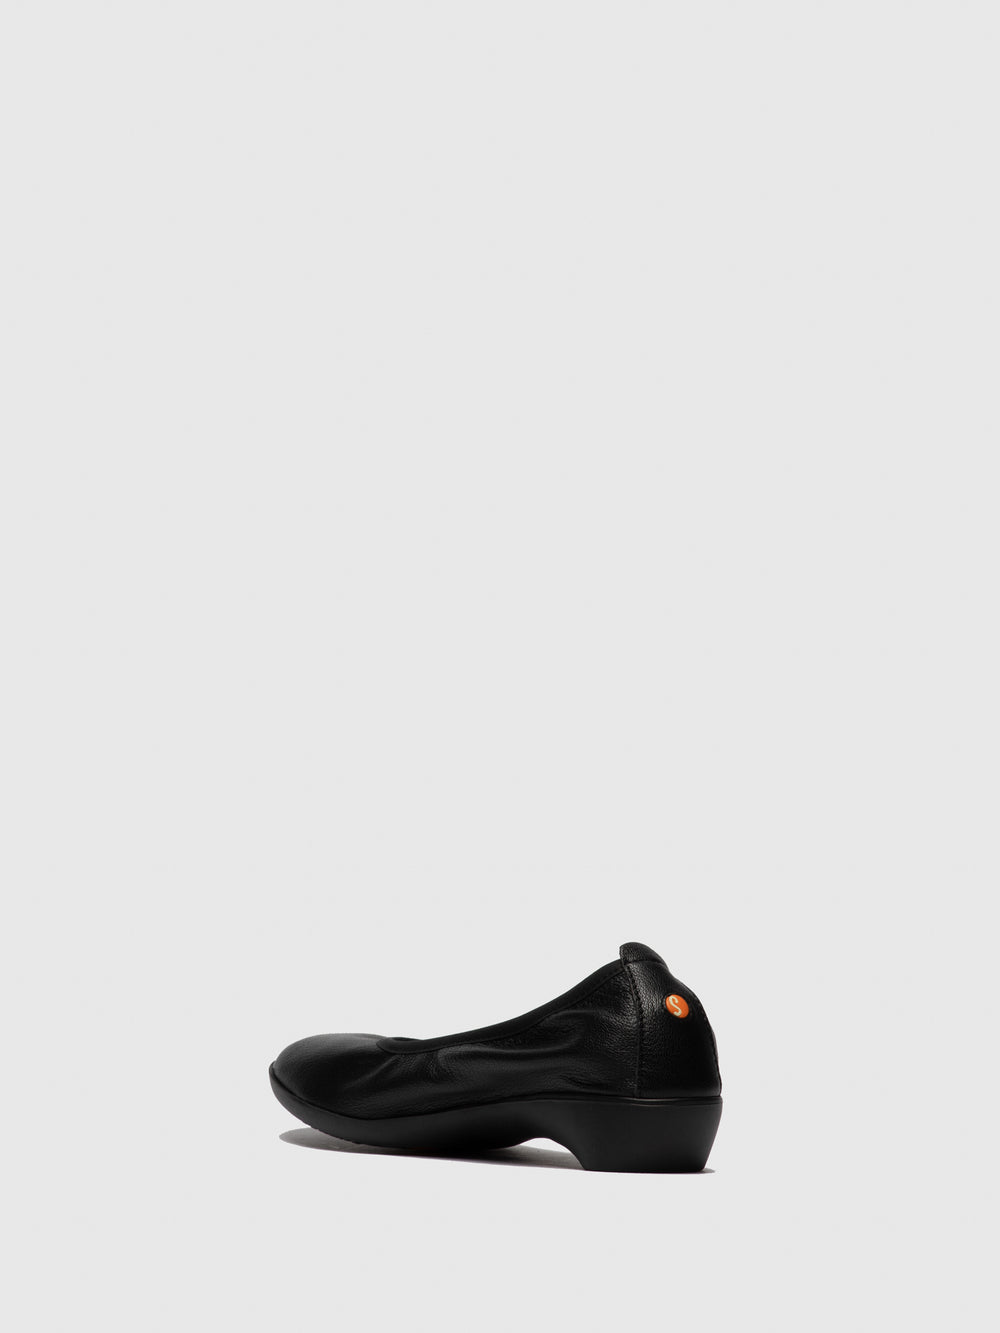 Round Toe Ballerinas GLOR566SOF Black Leather